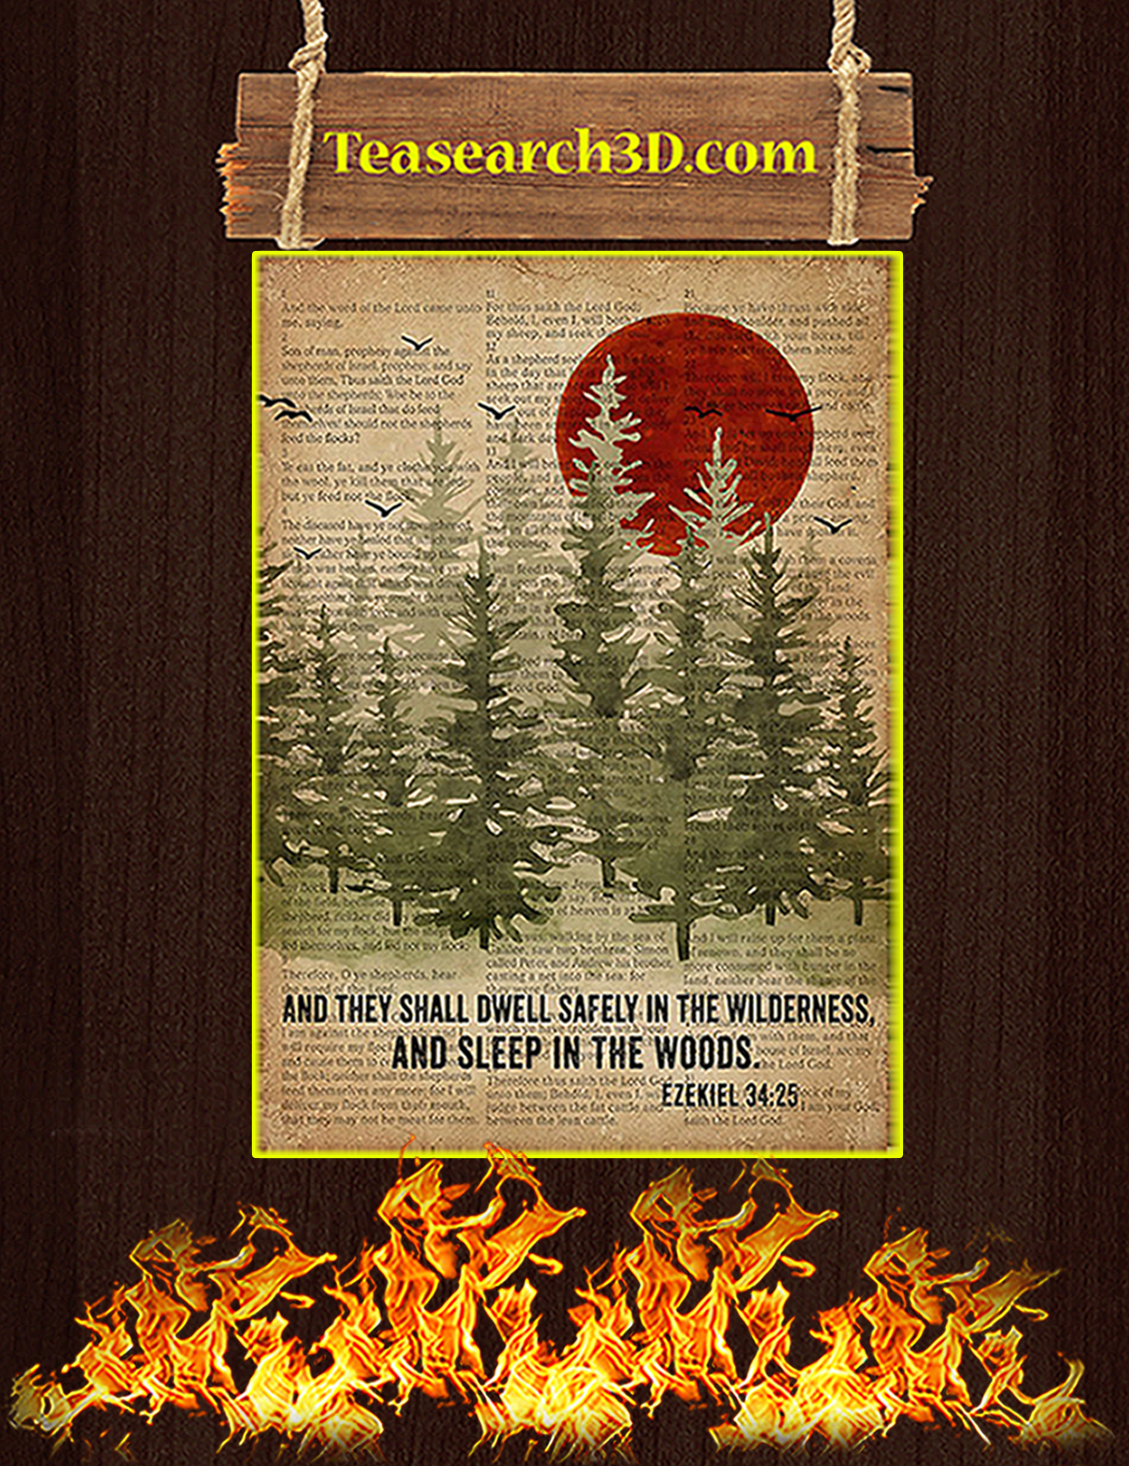 And they shall dwell safety in the wilderness and sleep in the woods poster A3